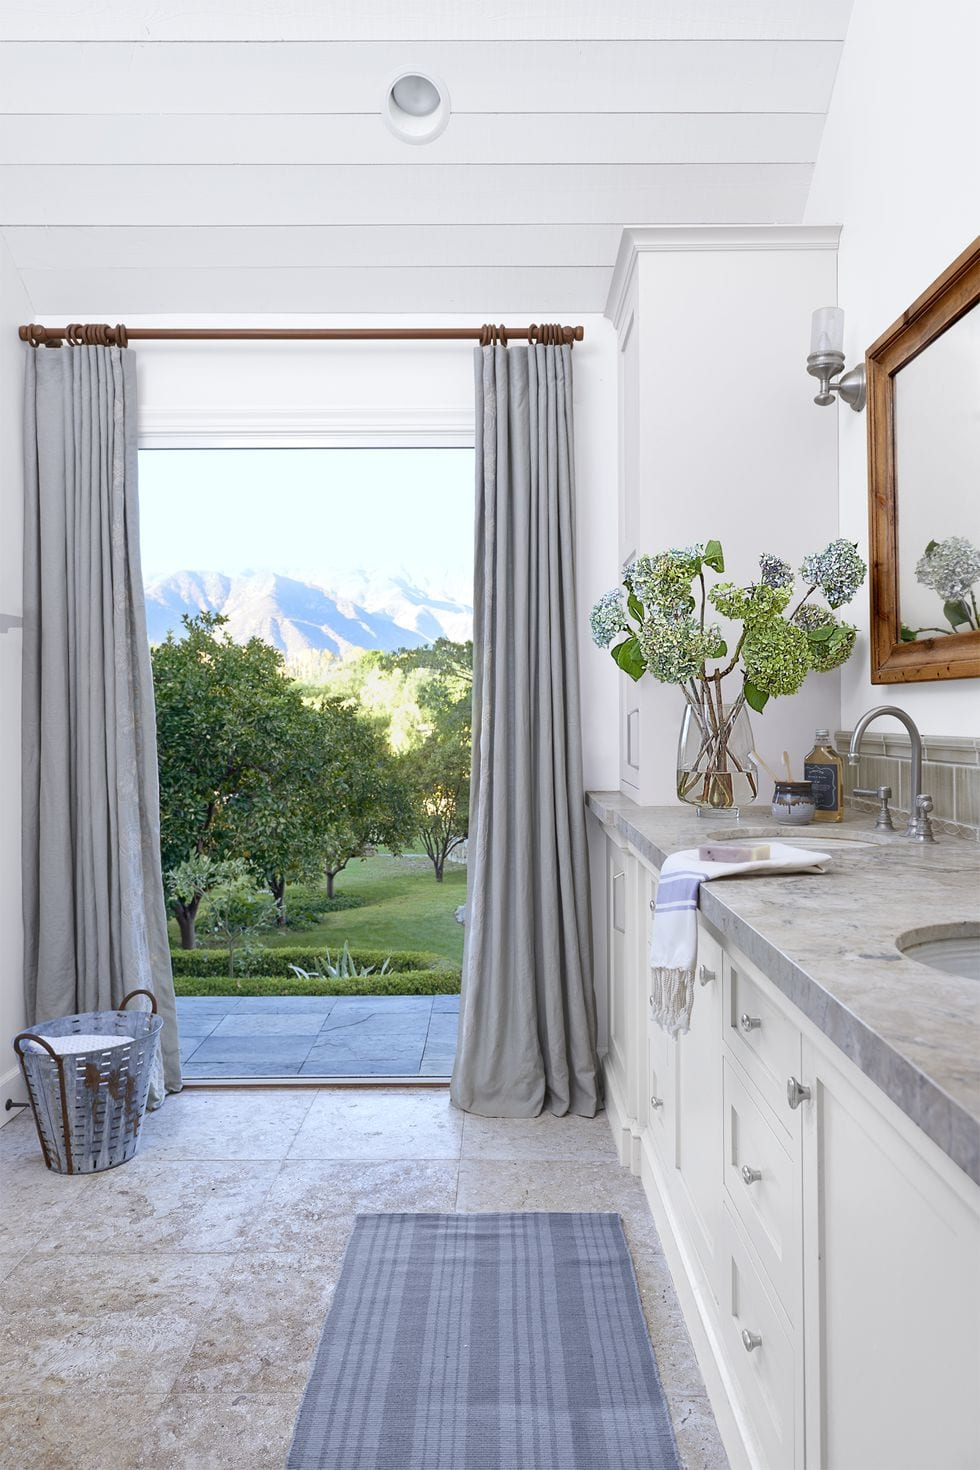 Bath Room With a View ideas